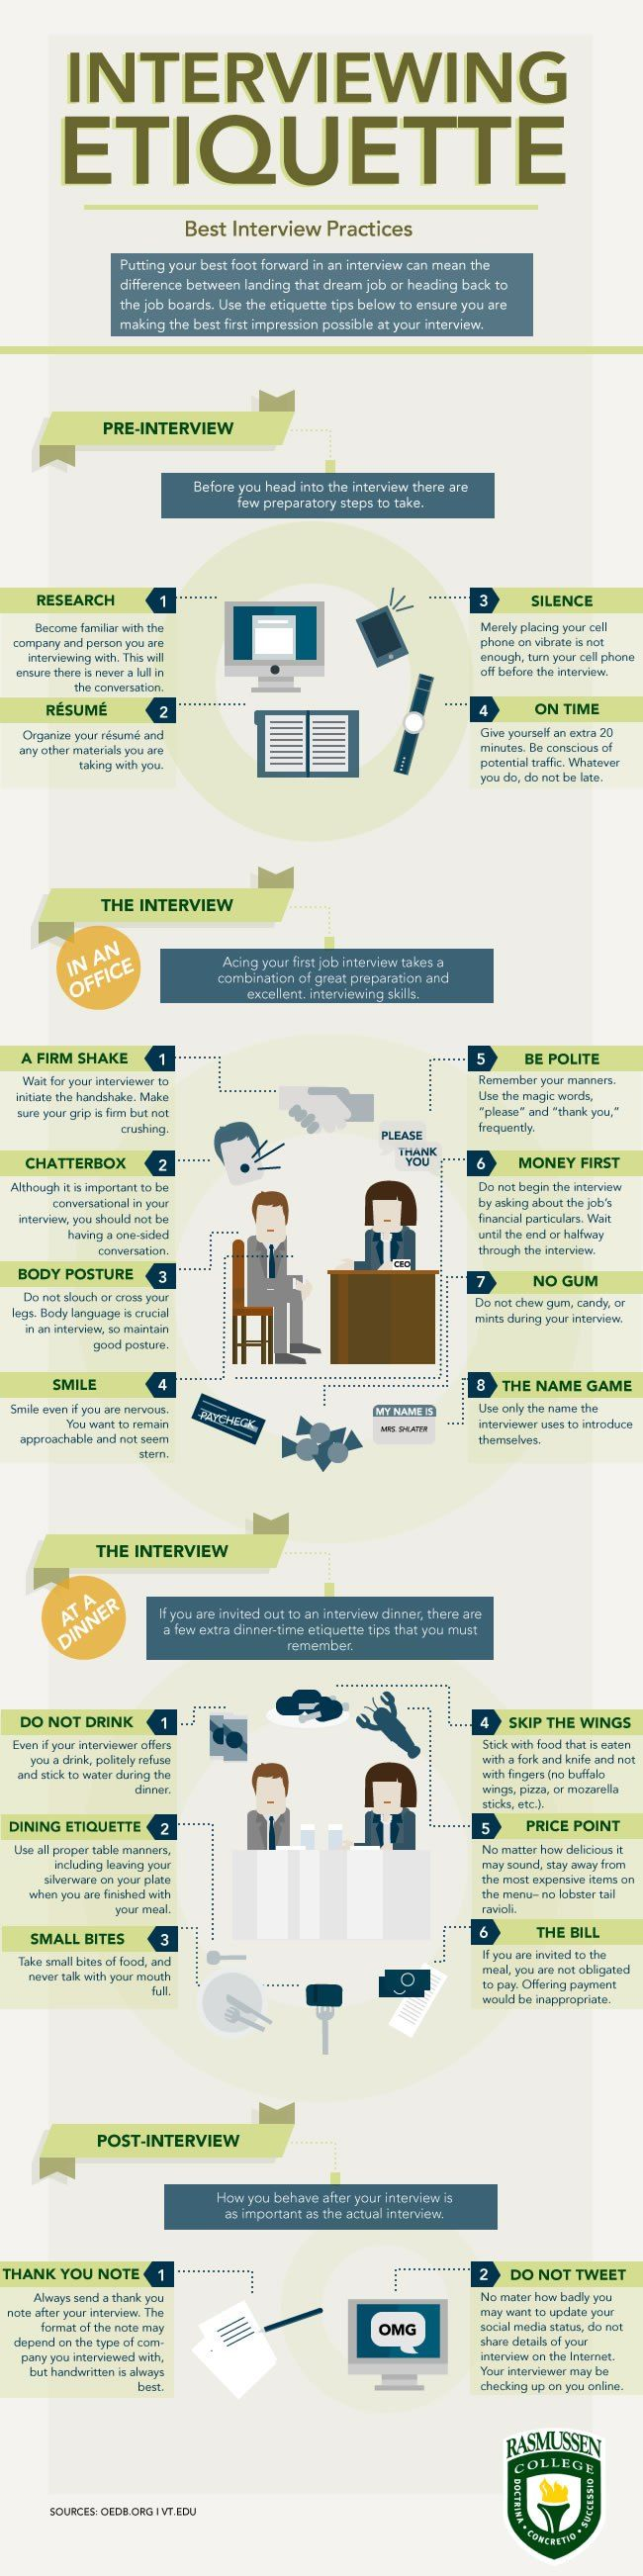 Basic Interview Etiquette Advice For The